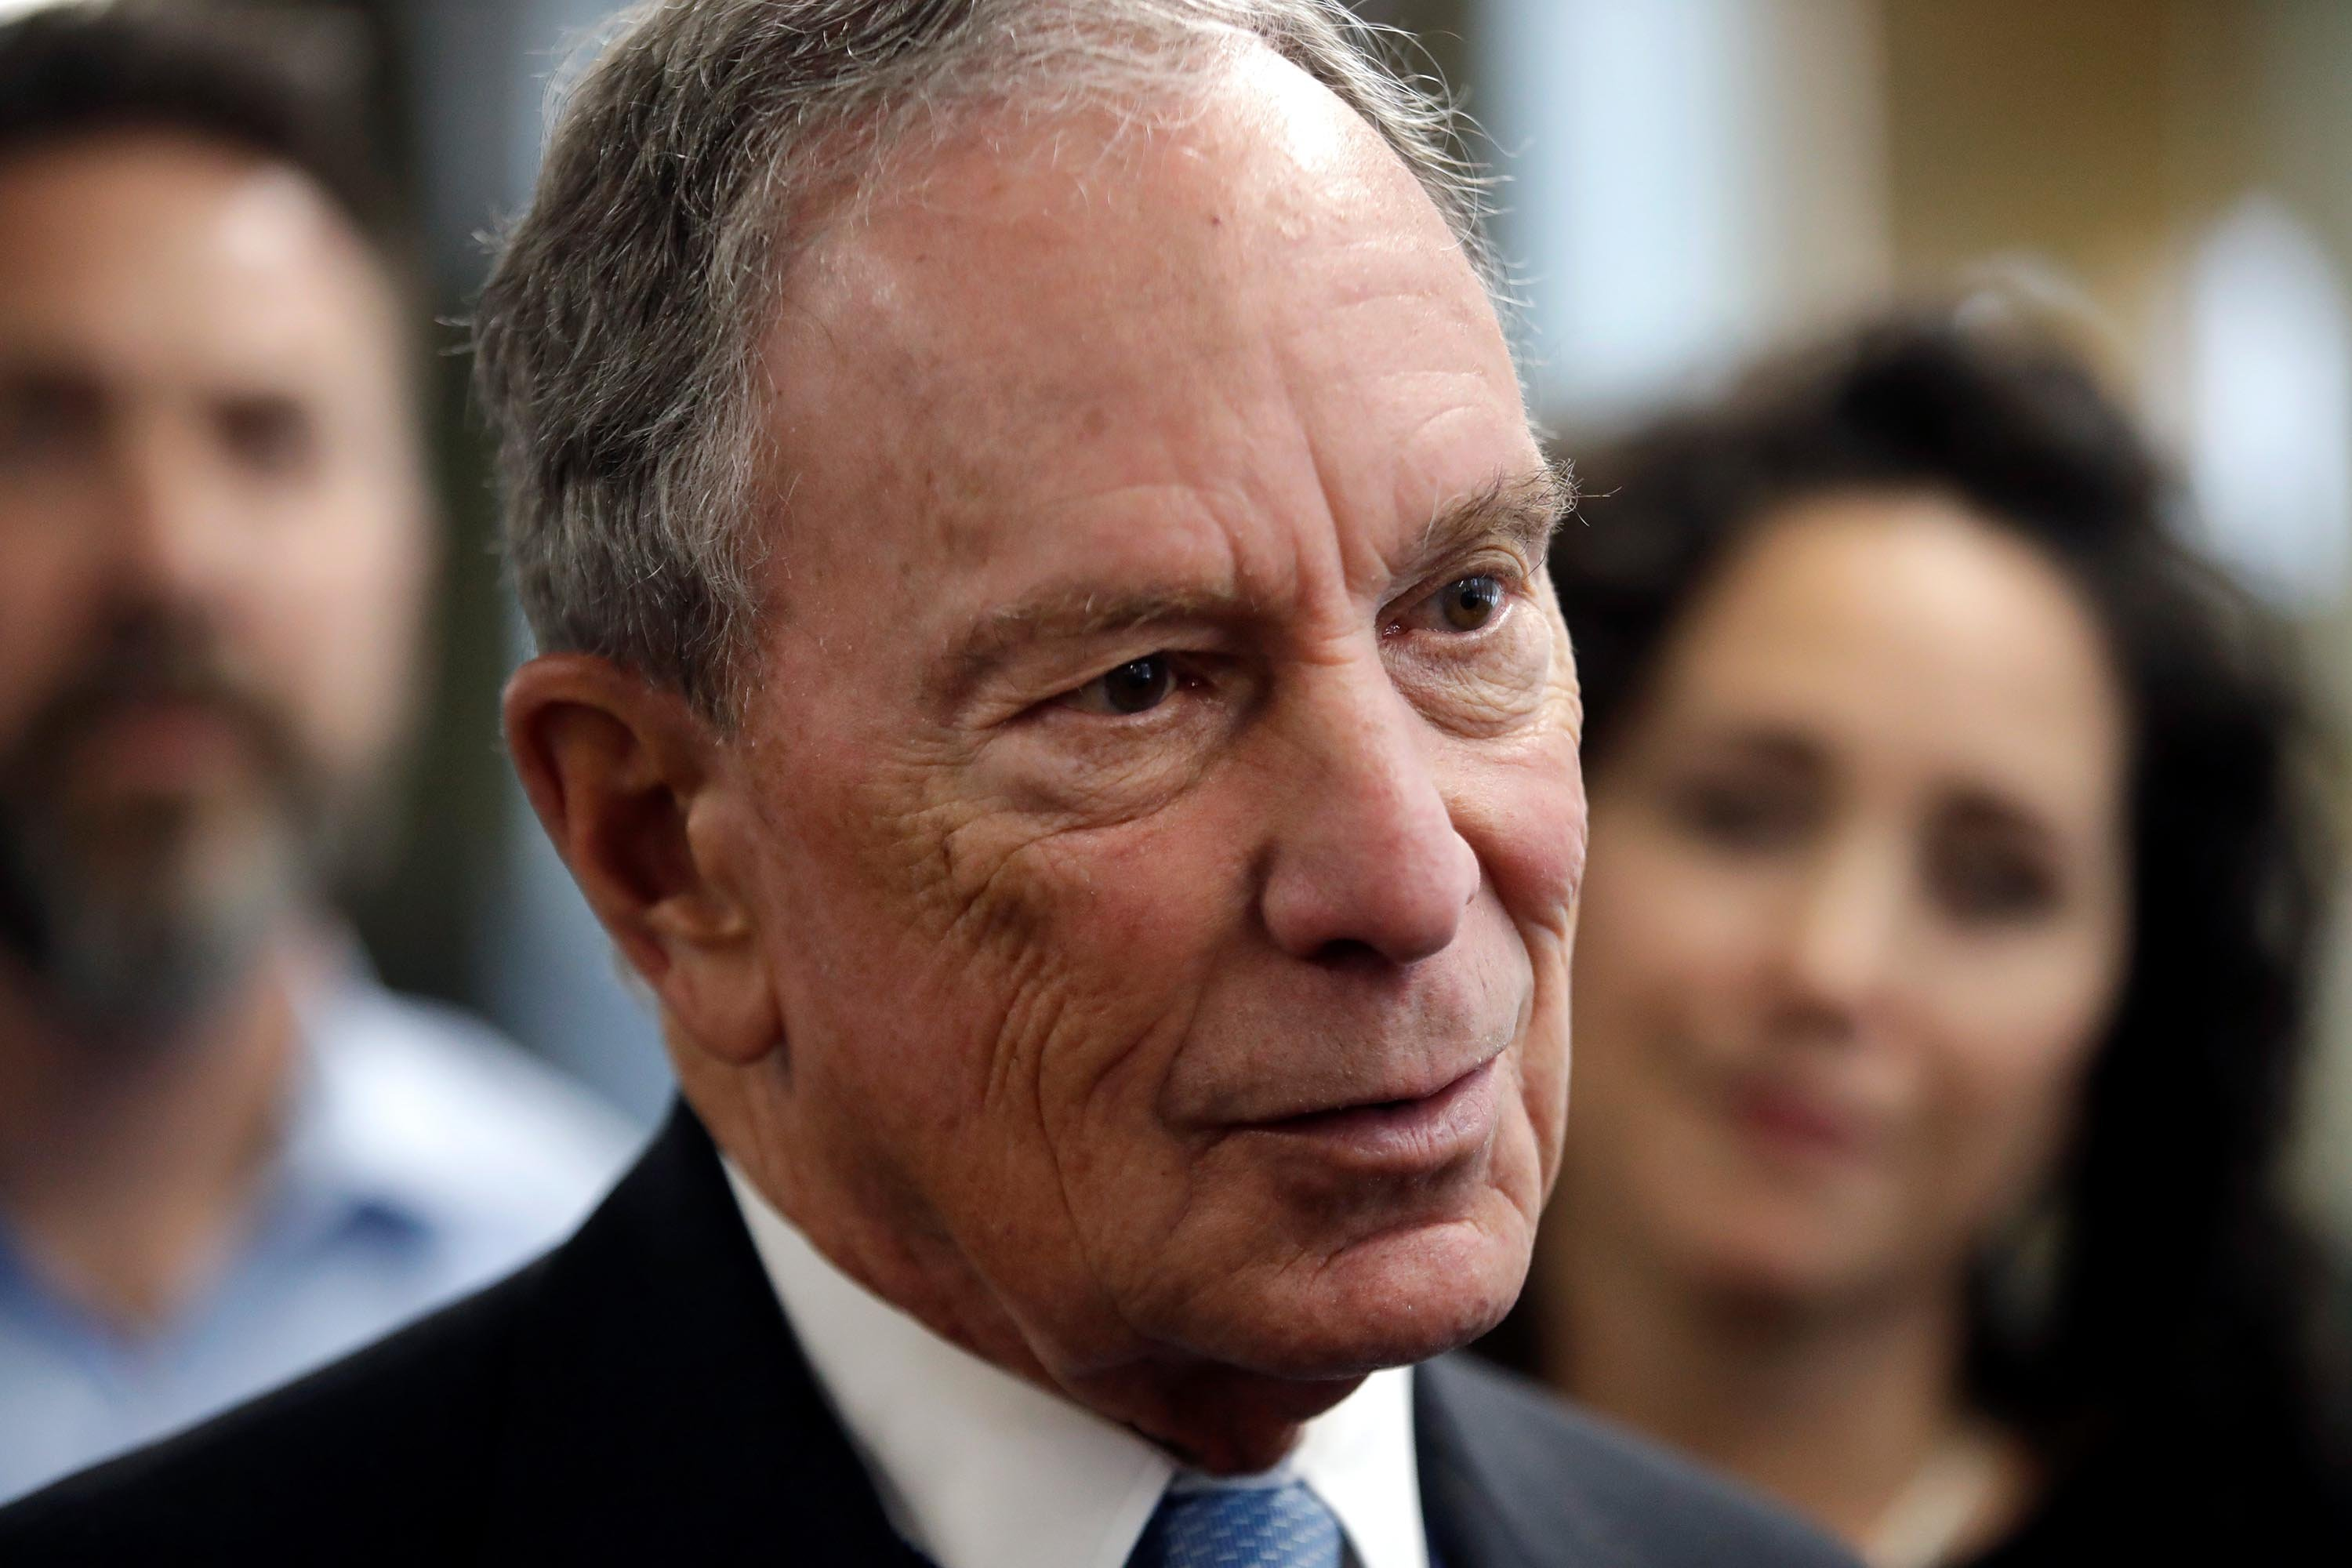 Michael Bloomberg visits Arkansas to file for state's Democratic presidential primary